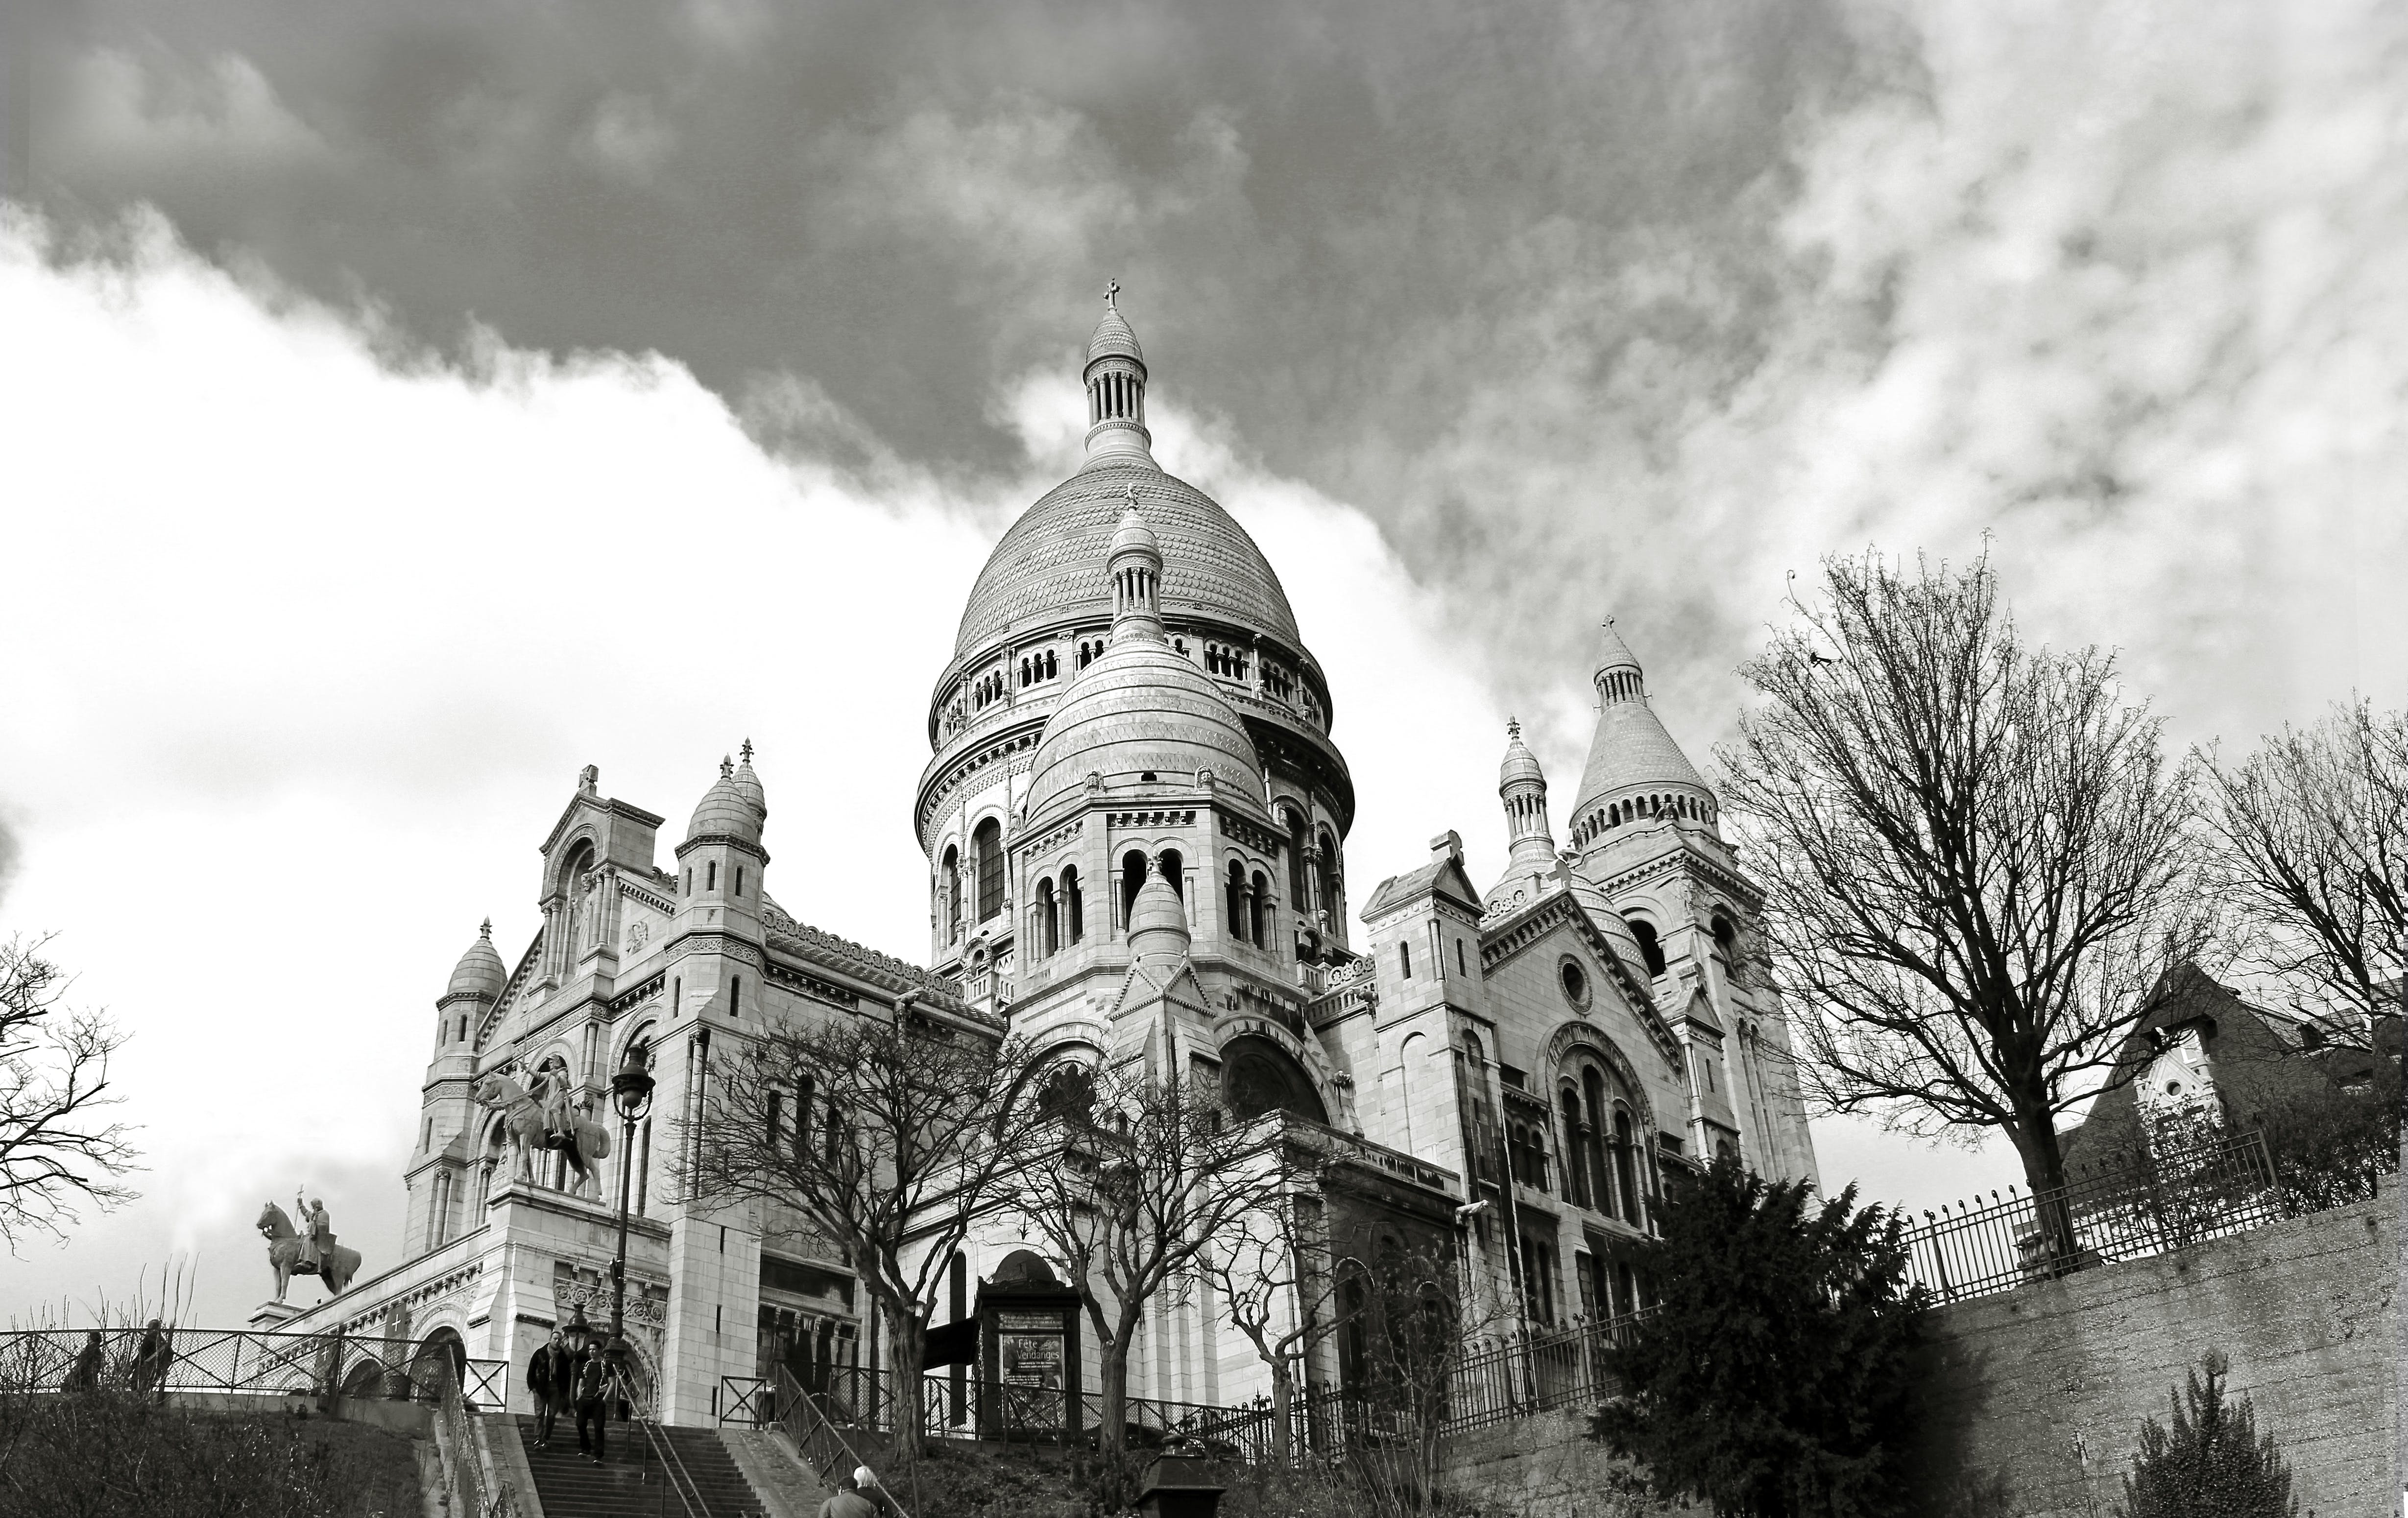 Greyscale Photography of Dome Building